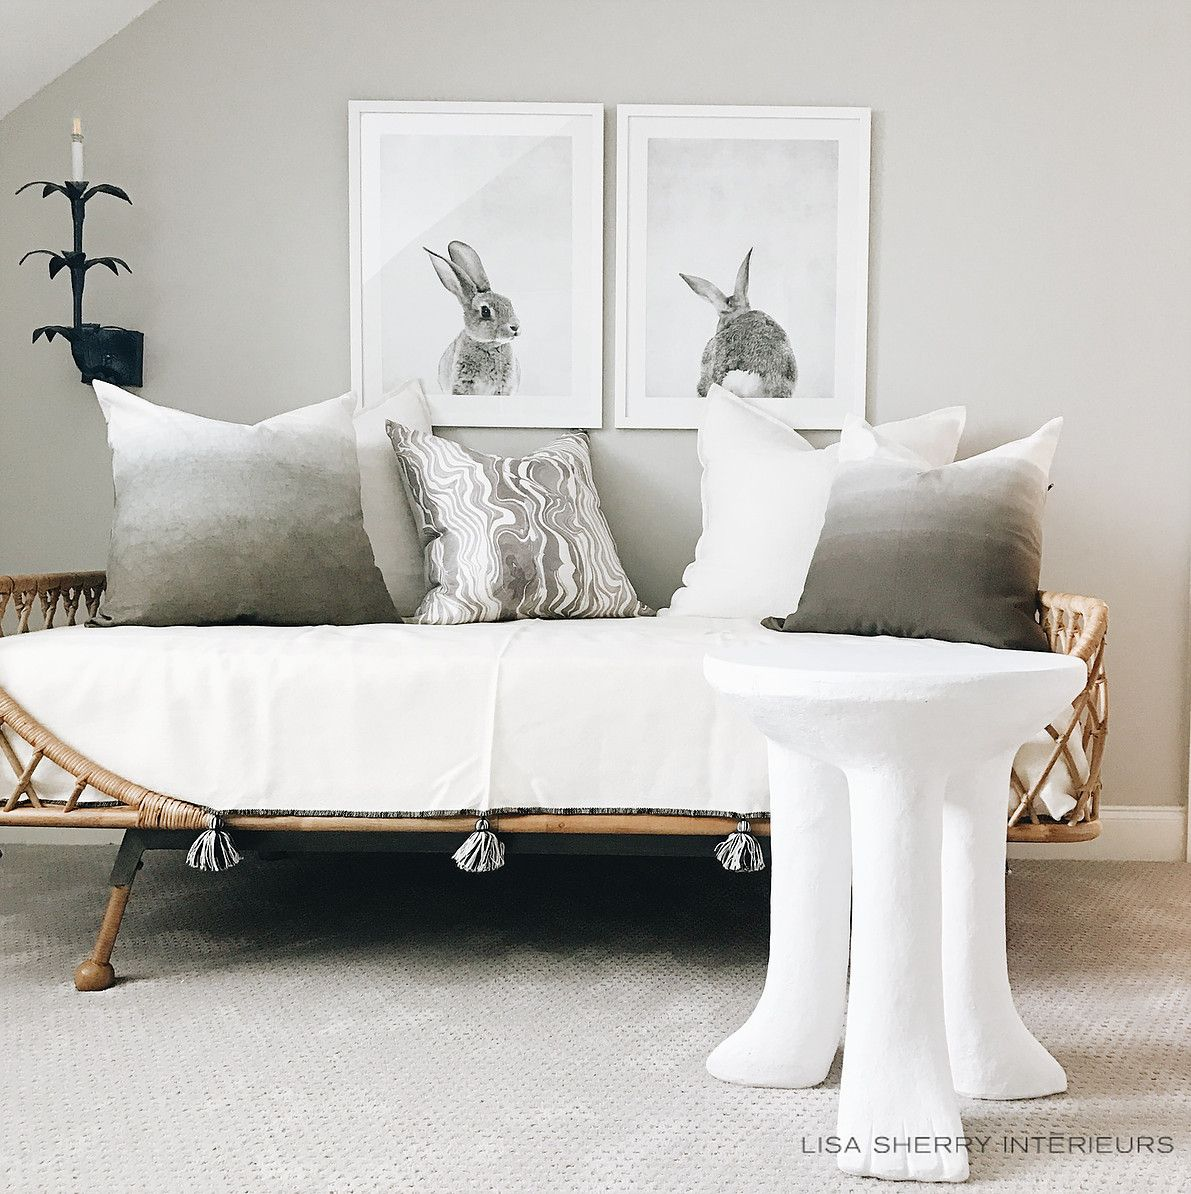 lisasherry   RALEIGH   NC   Home decor, Furniture, Chaise ...